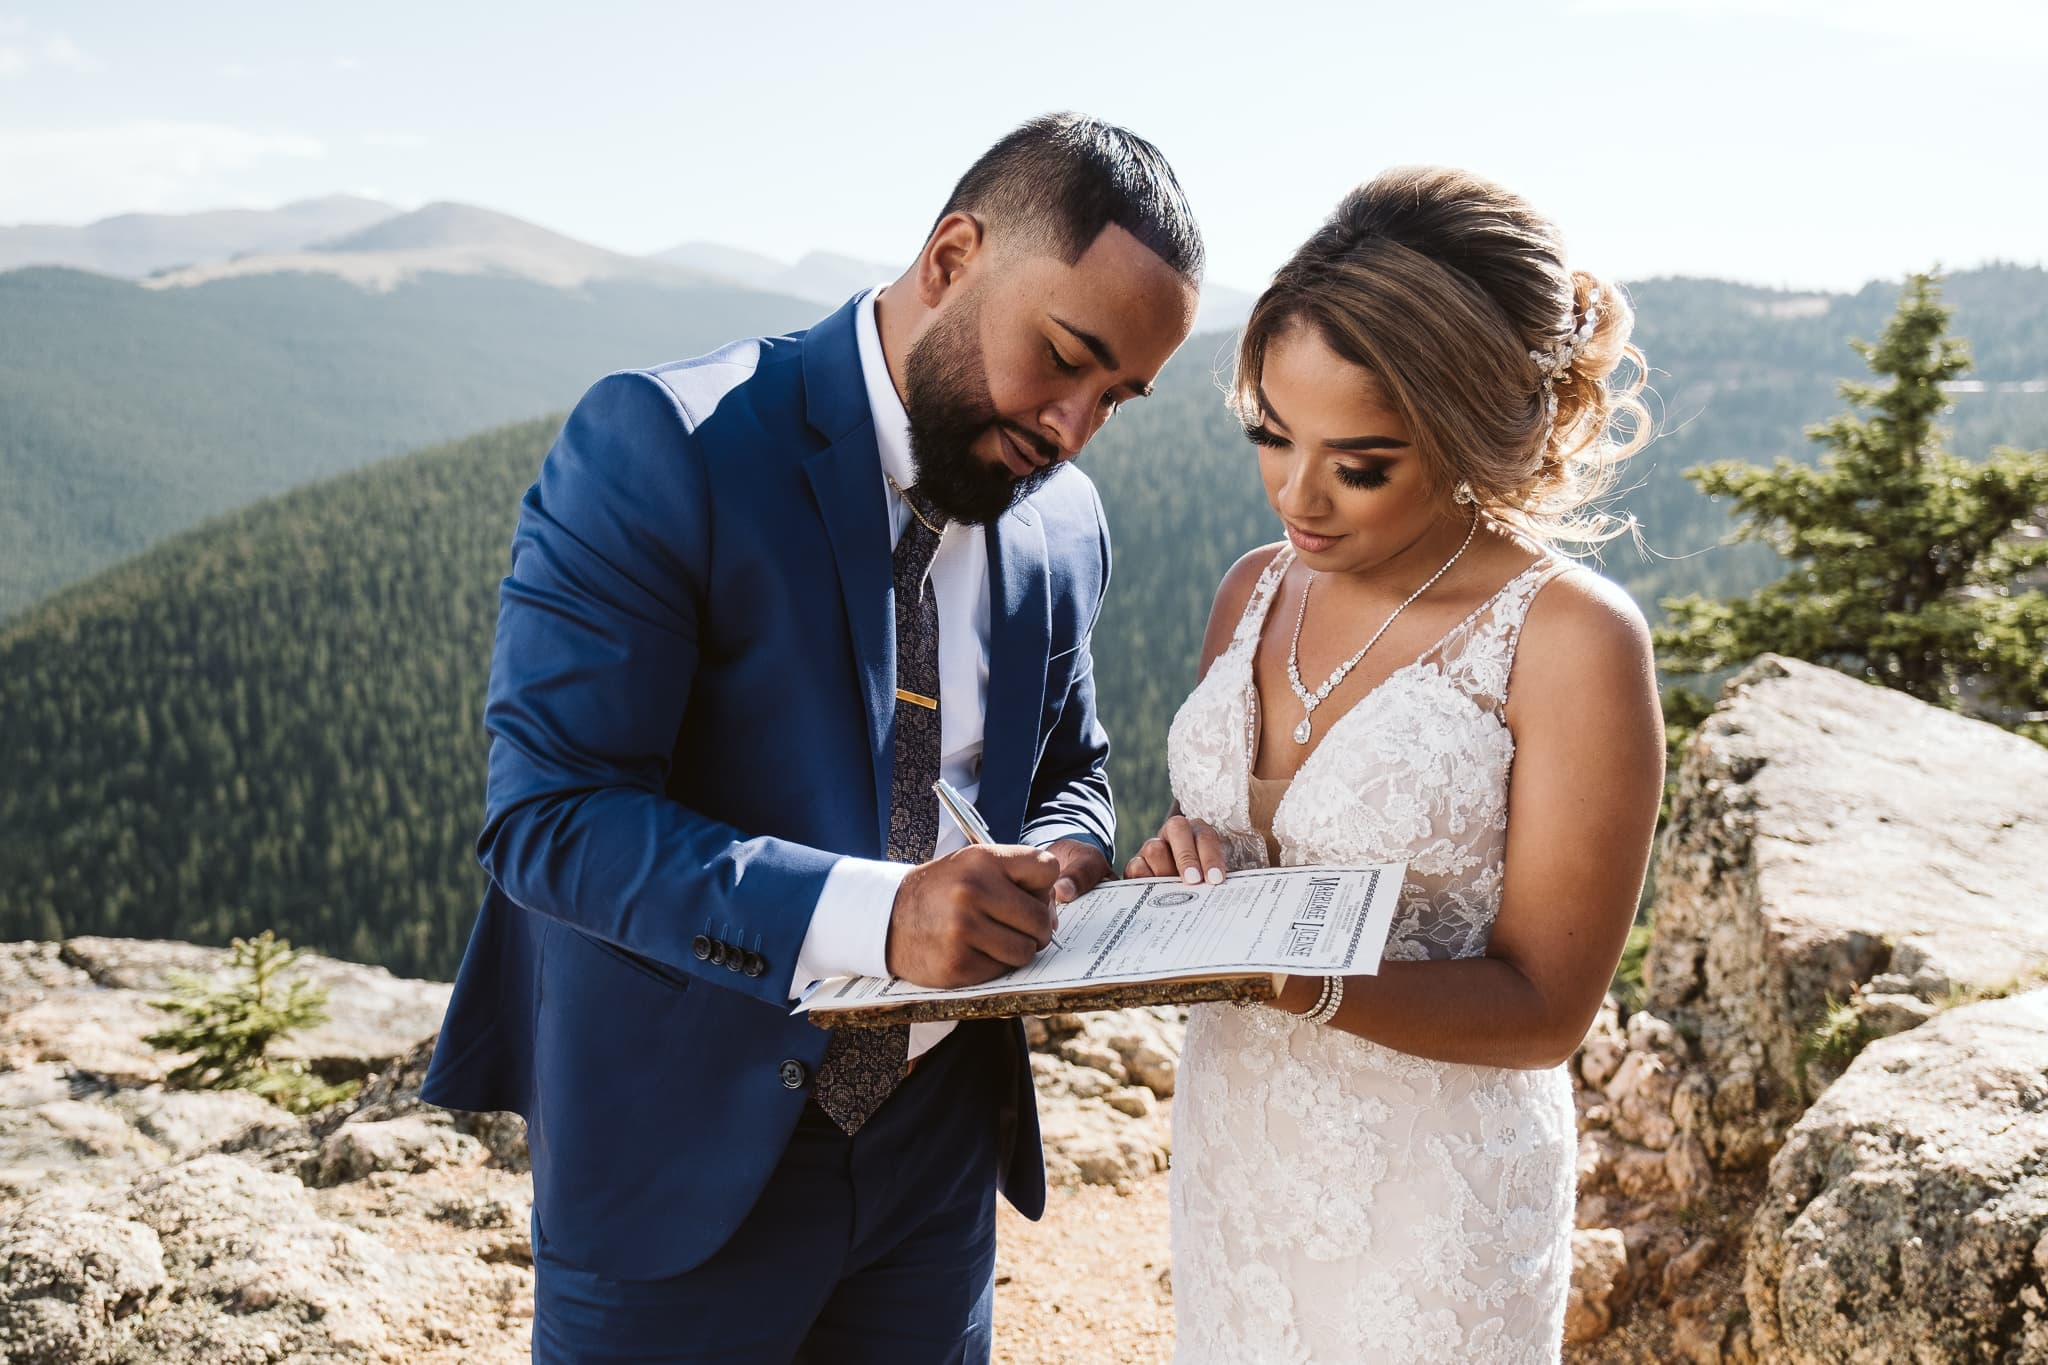 Couple self-solemnize their elopement in Colorado